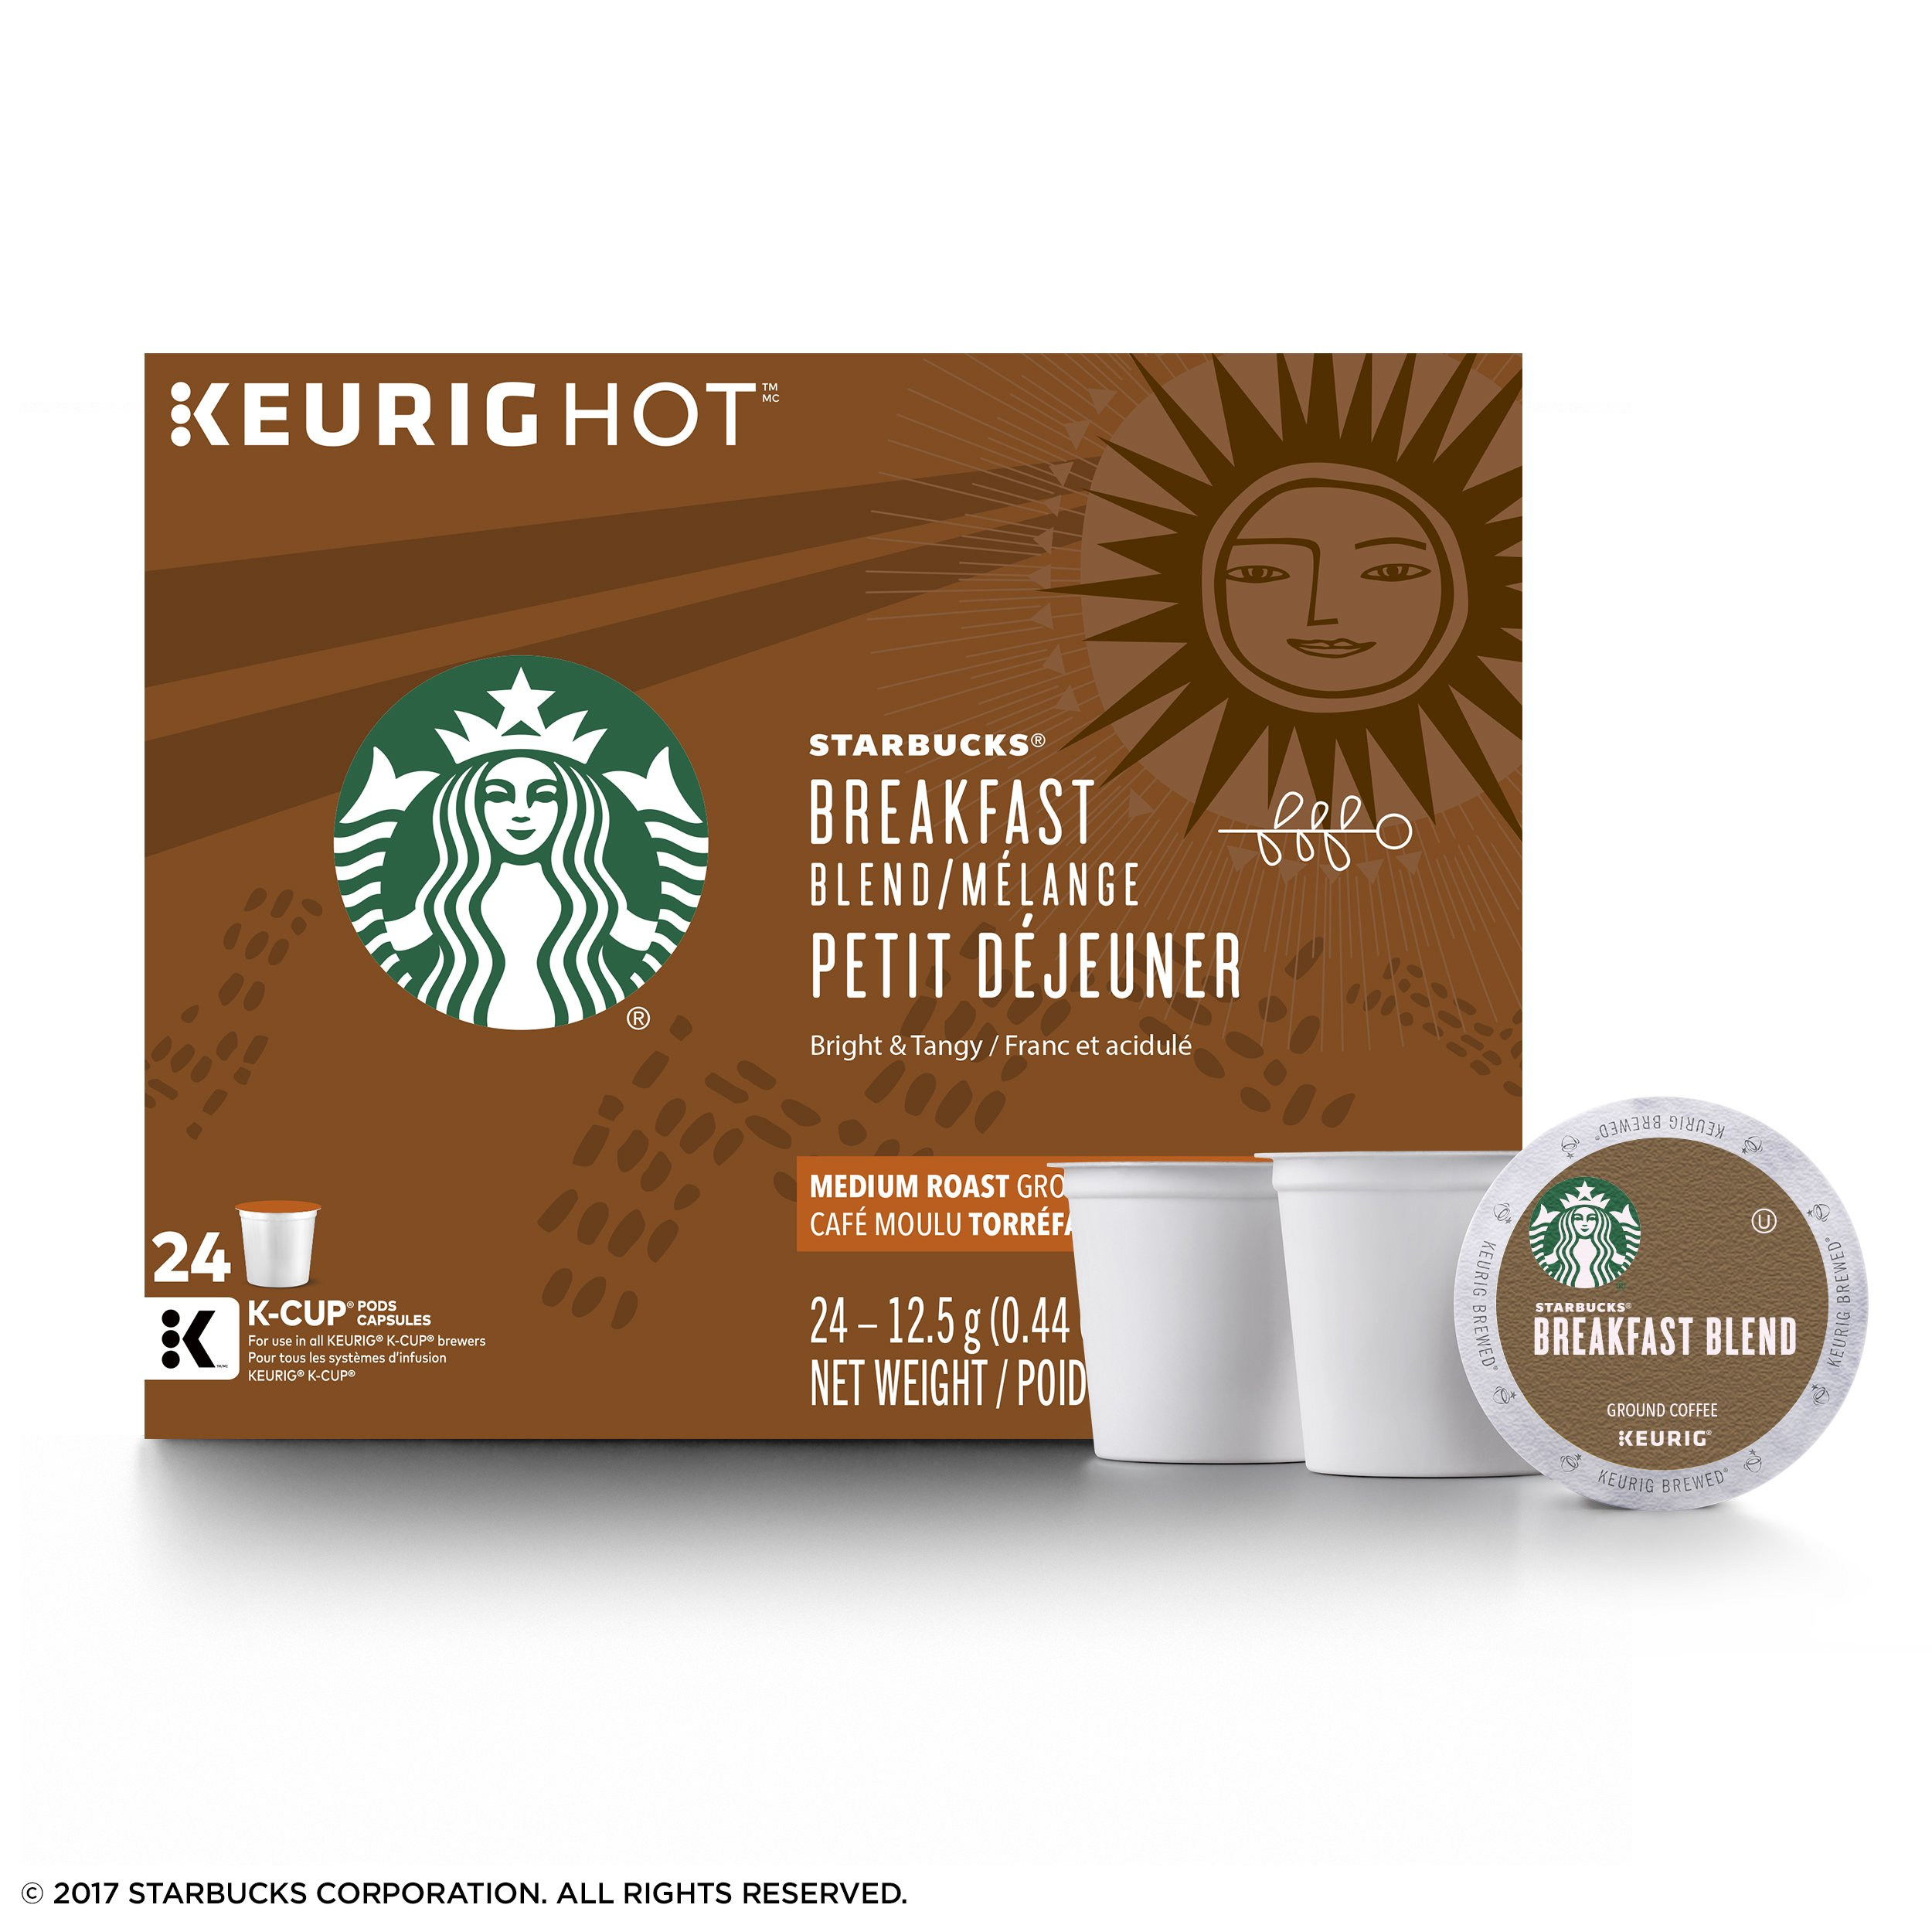 Starbucks Breakfast Blend Medium Roast Single Cup Coffee for Keurig Brewers, 4 Boxes of 24 (96 Total K-Cup pods) by Starbucks